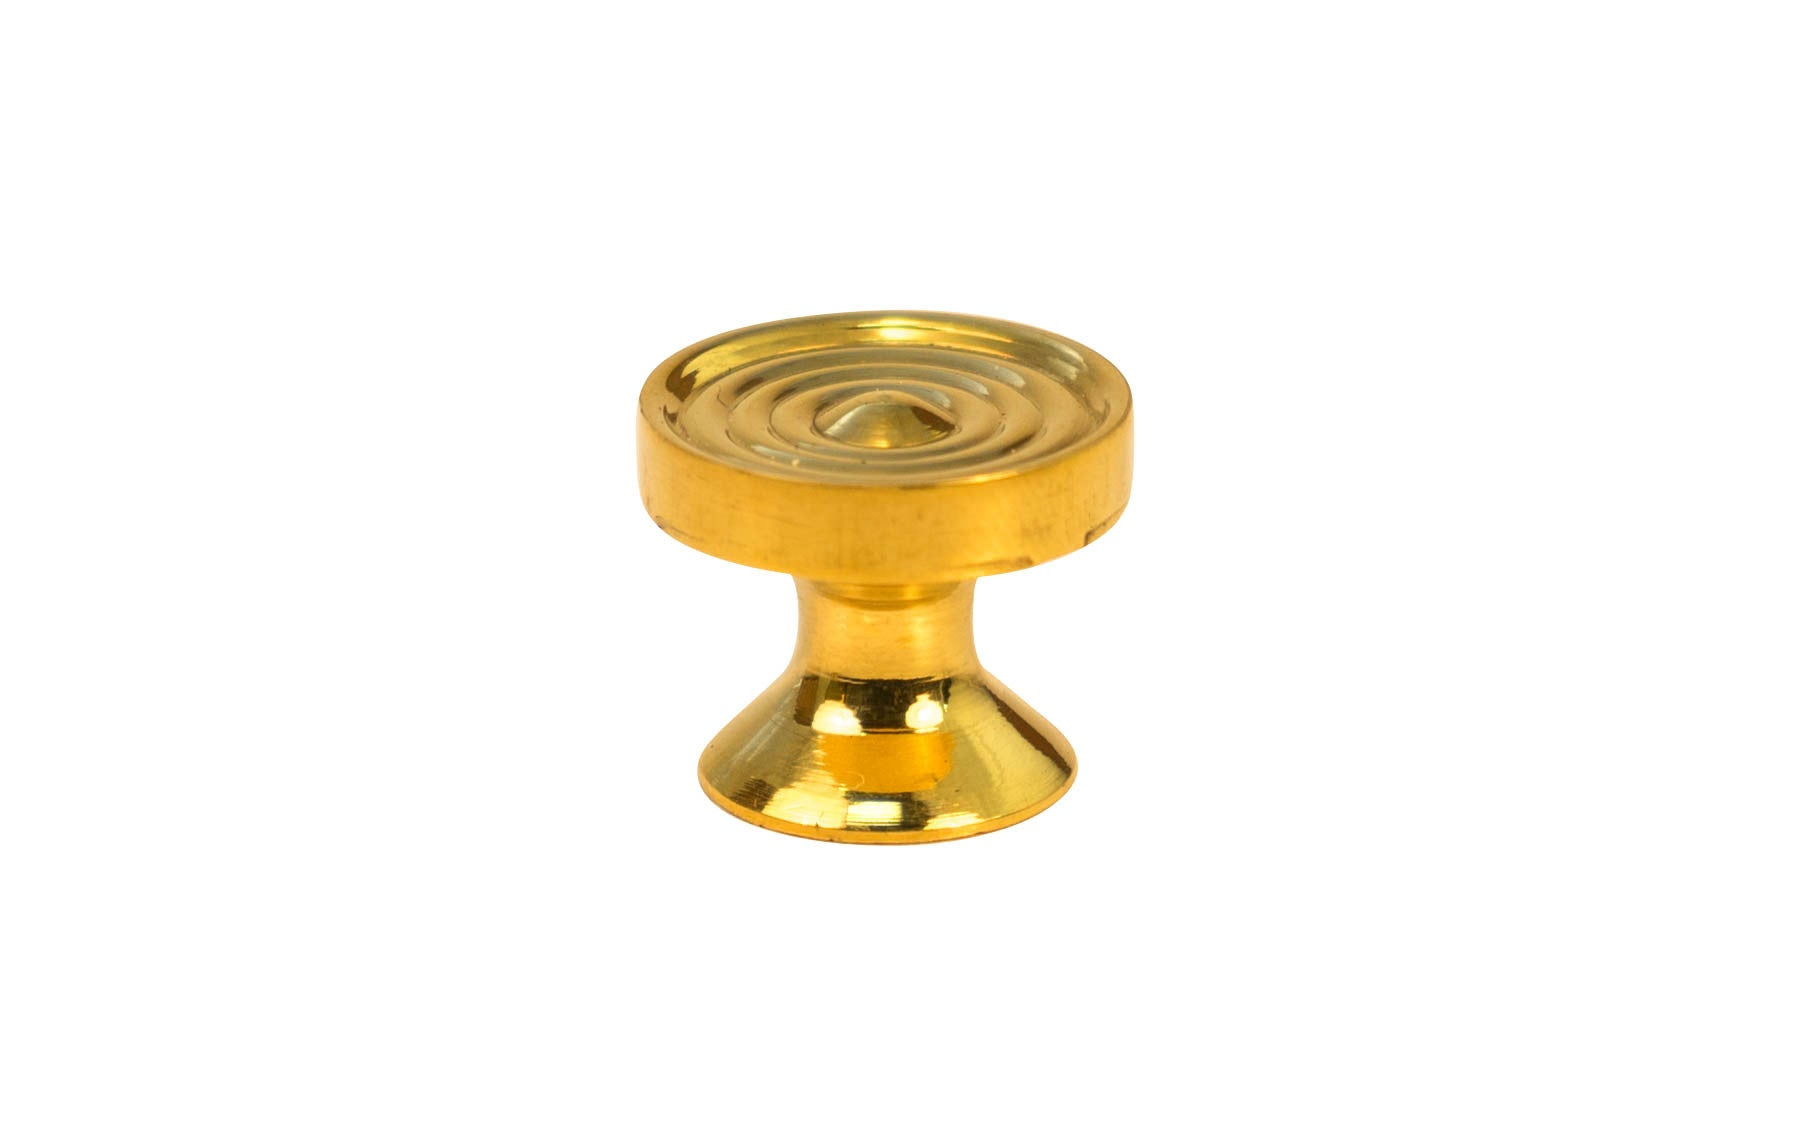 Solid Brass Mini Knob with Concentric Rings ~ 5/8